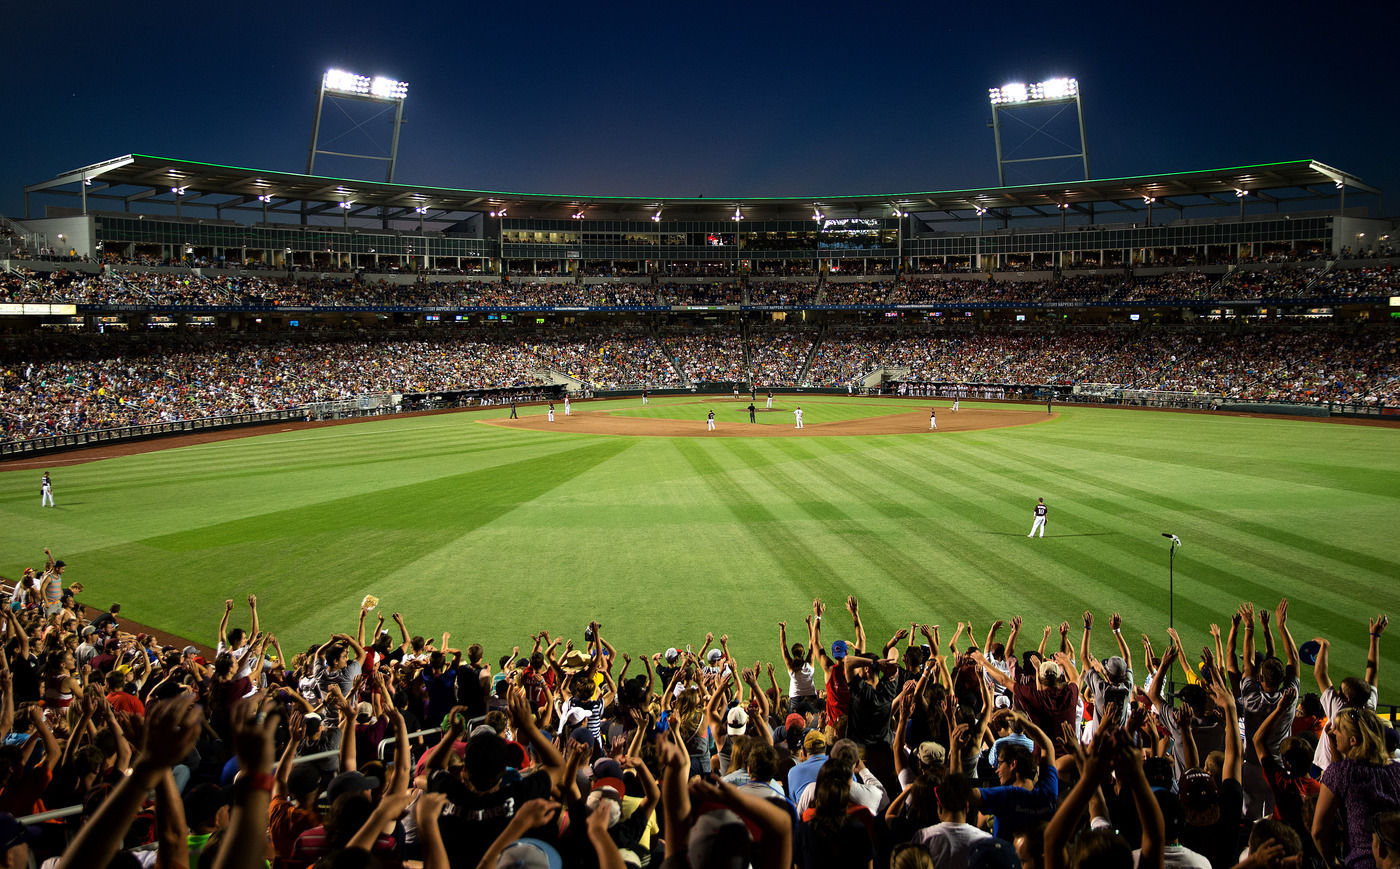 CWS fans John Werner Tradition rules in